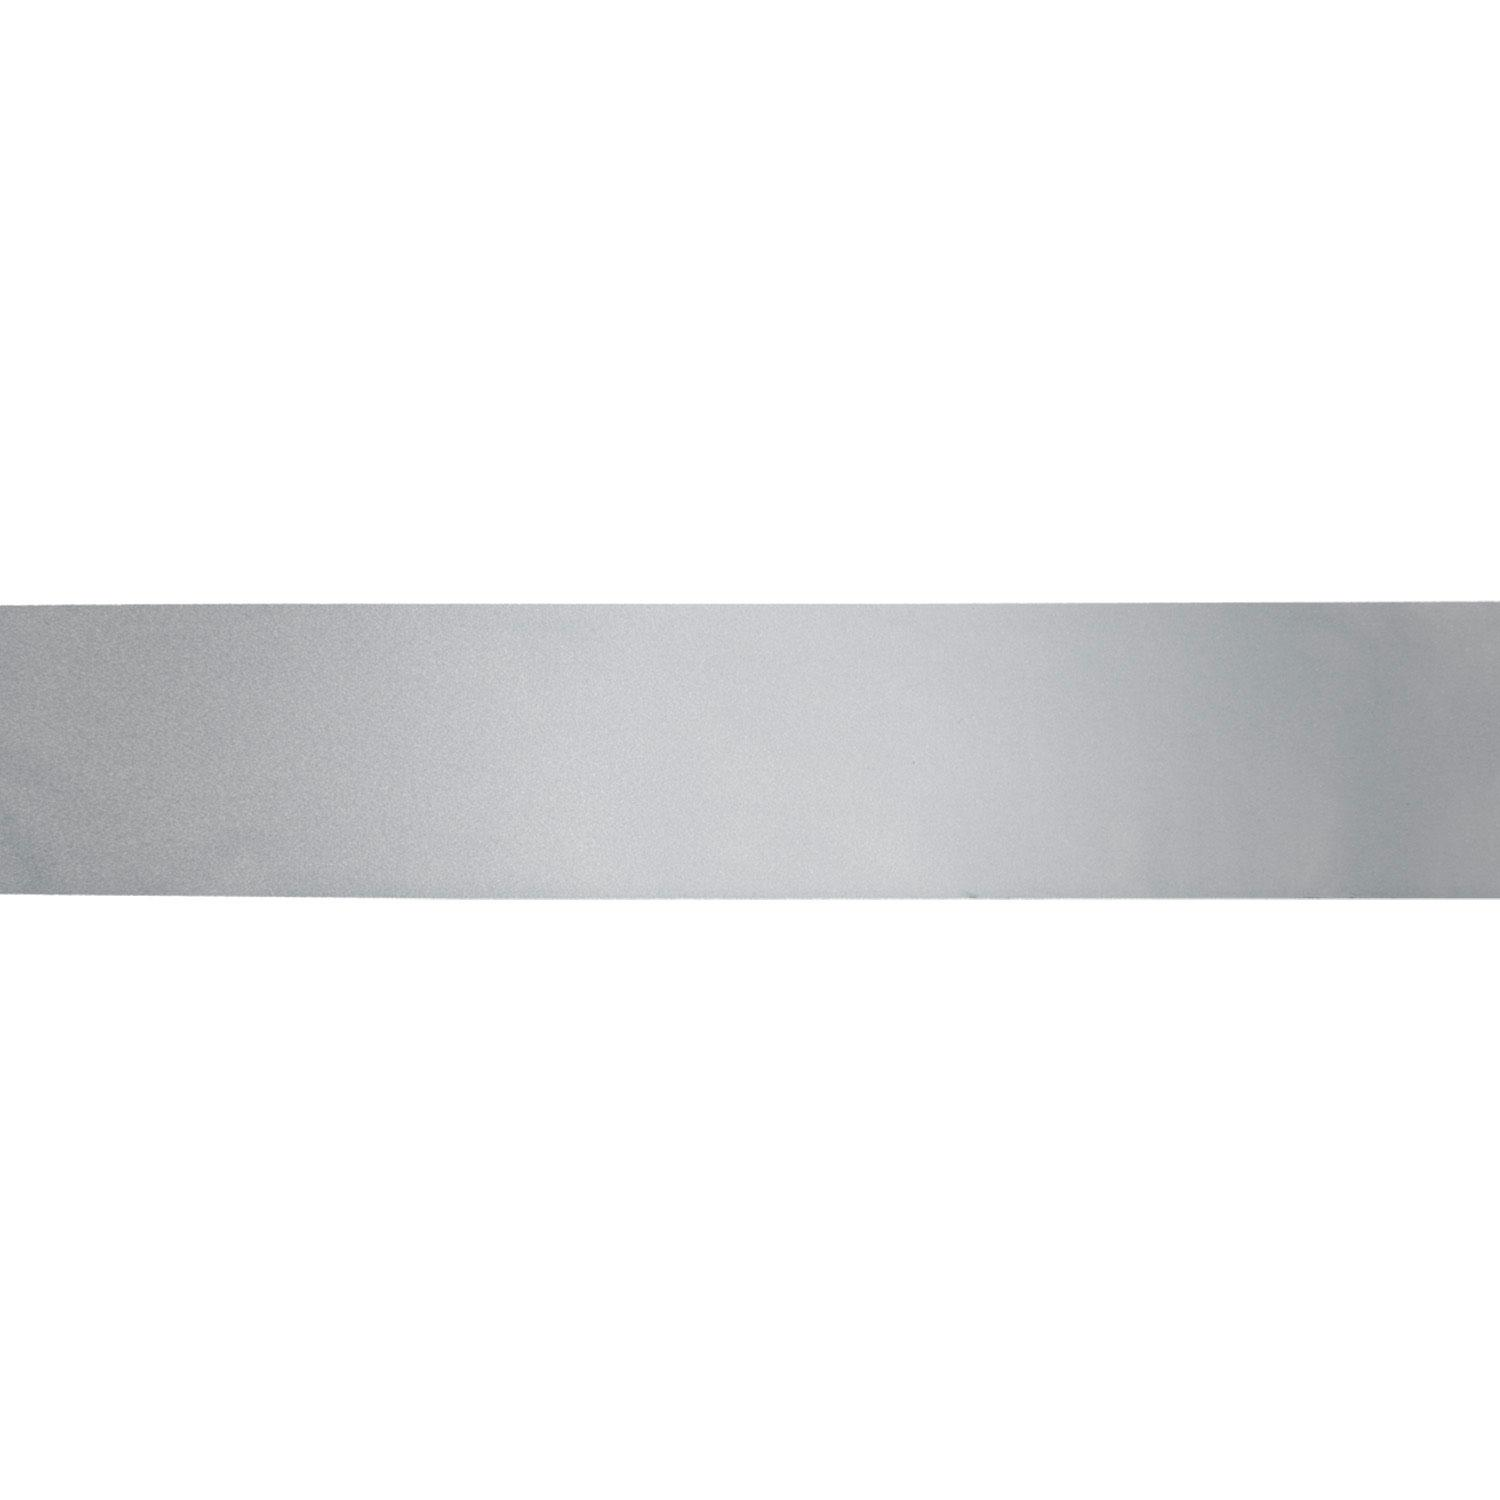 50mm Flame Retardent Silver Reflective Tape